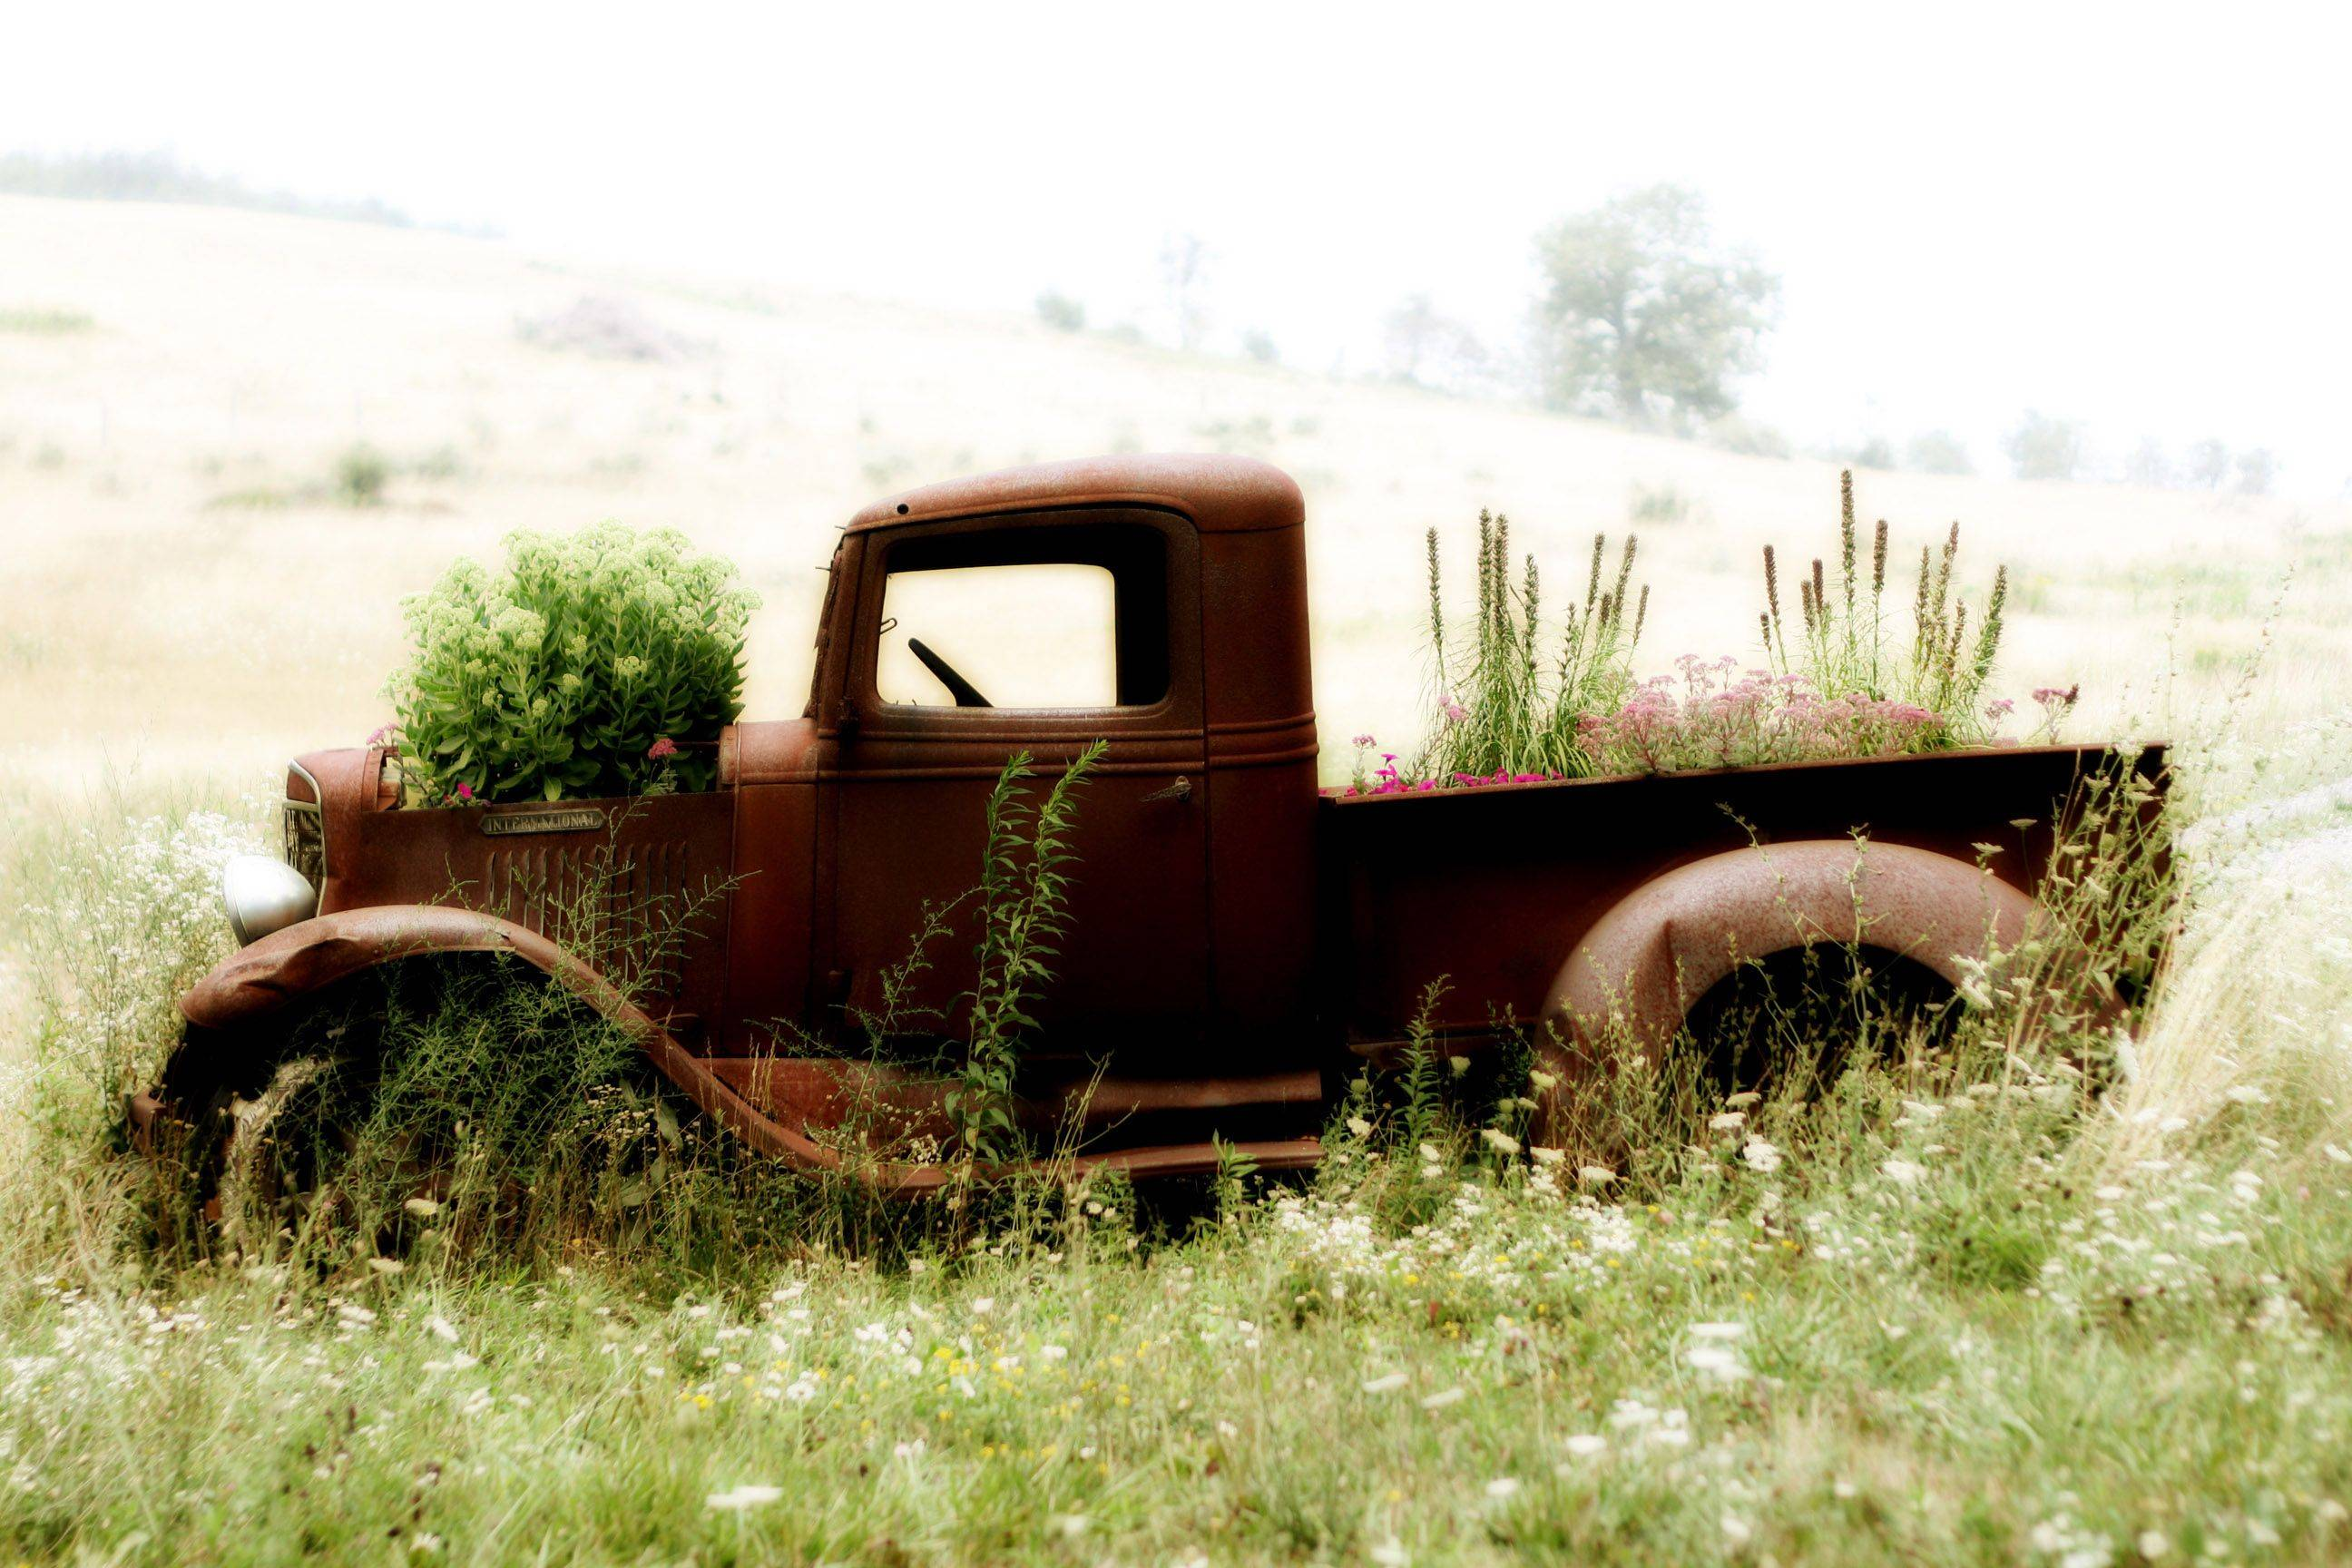 I drove my motorcycle to Washington D.C. late this past summer and took a wrong turn in the mountains of West Virginia, but it was worth having to backtrack once I stumbled onto this old forgotten pickup, alone in a field.